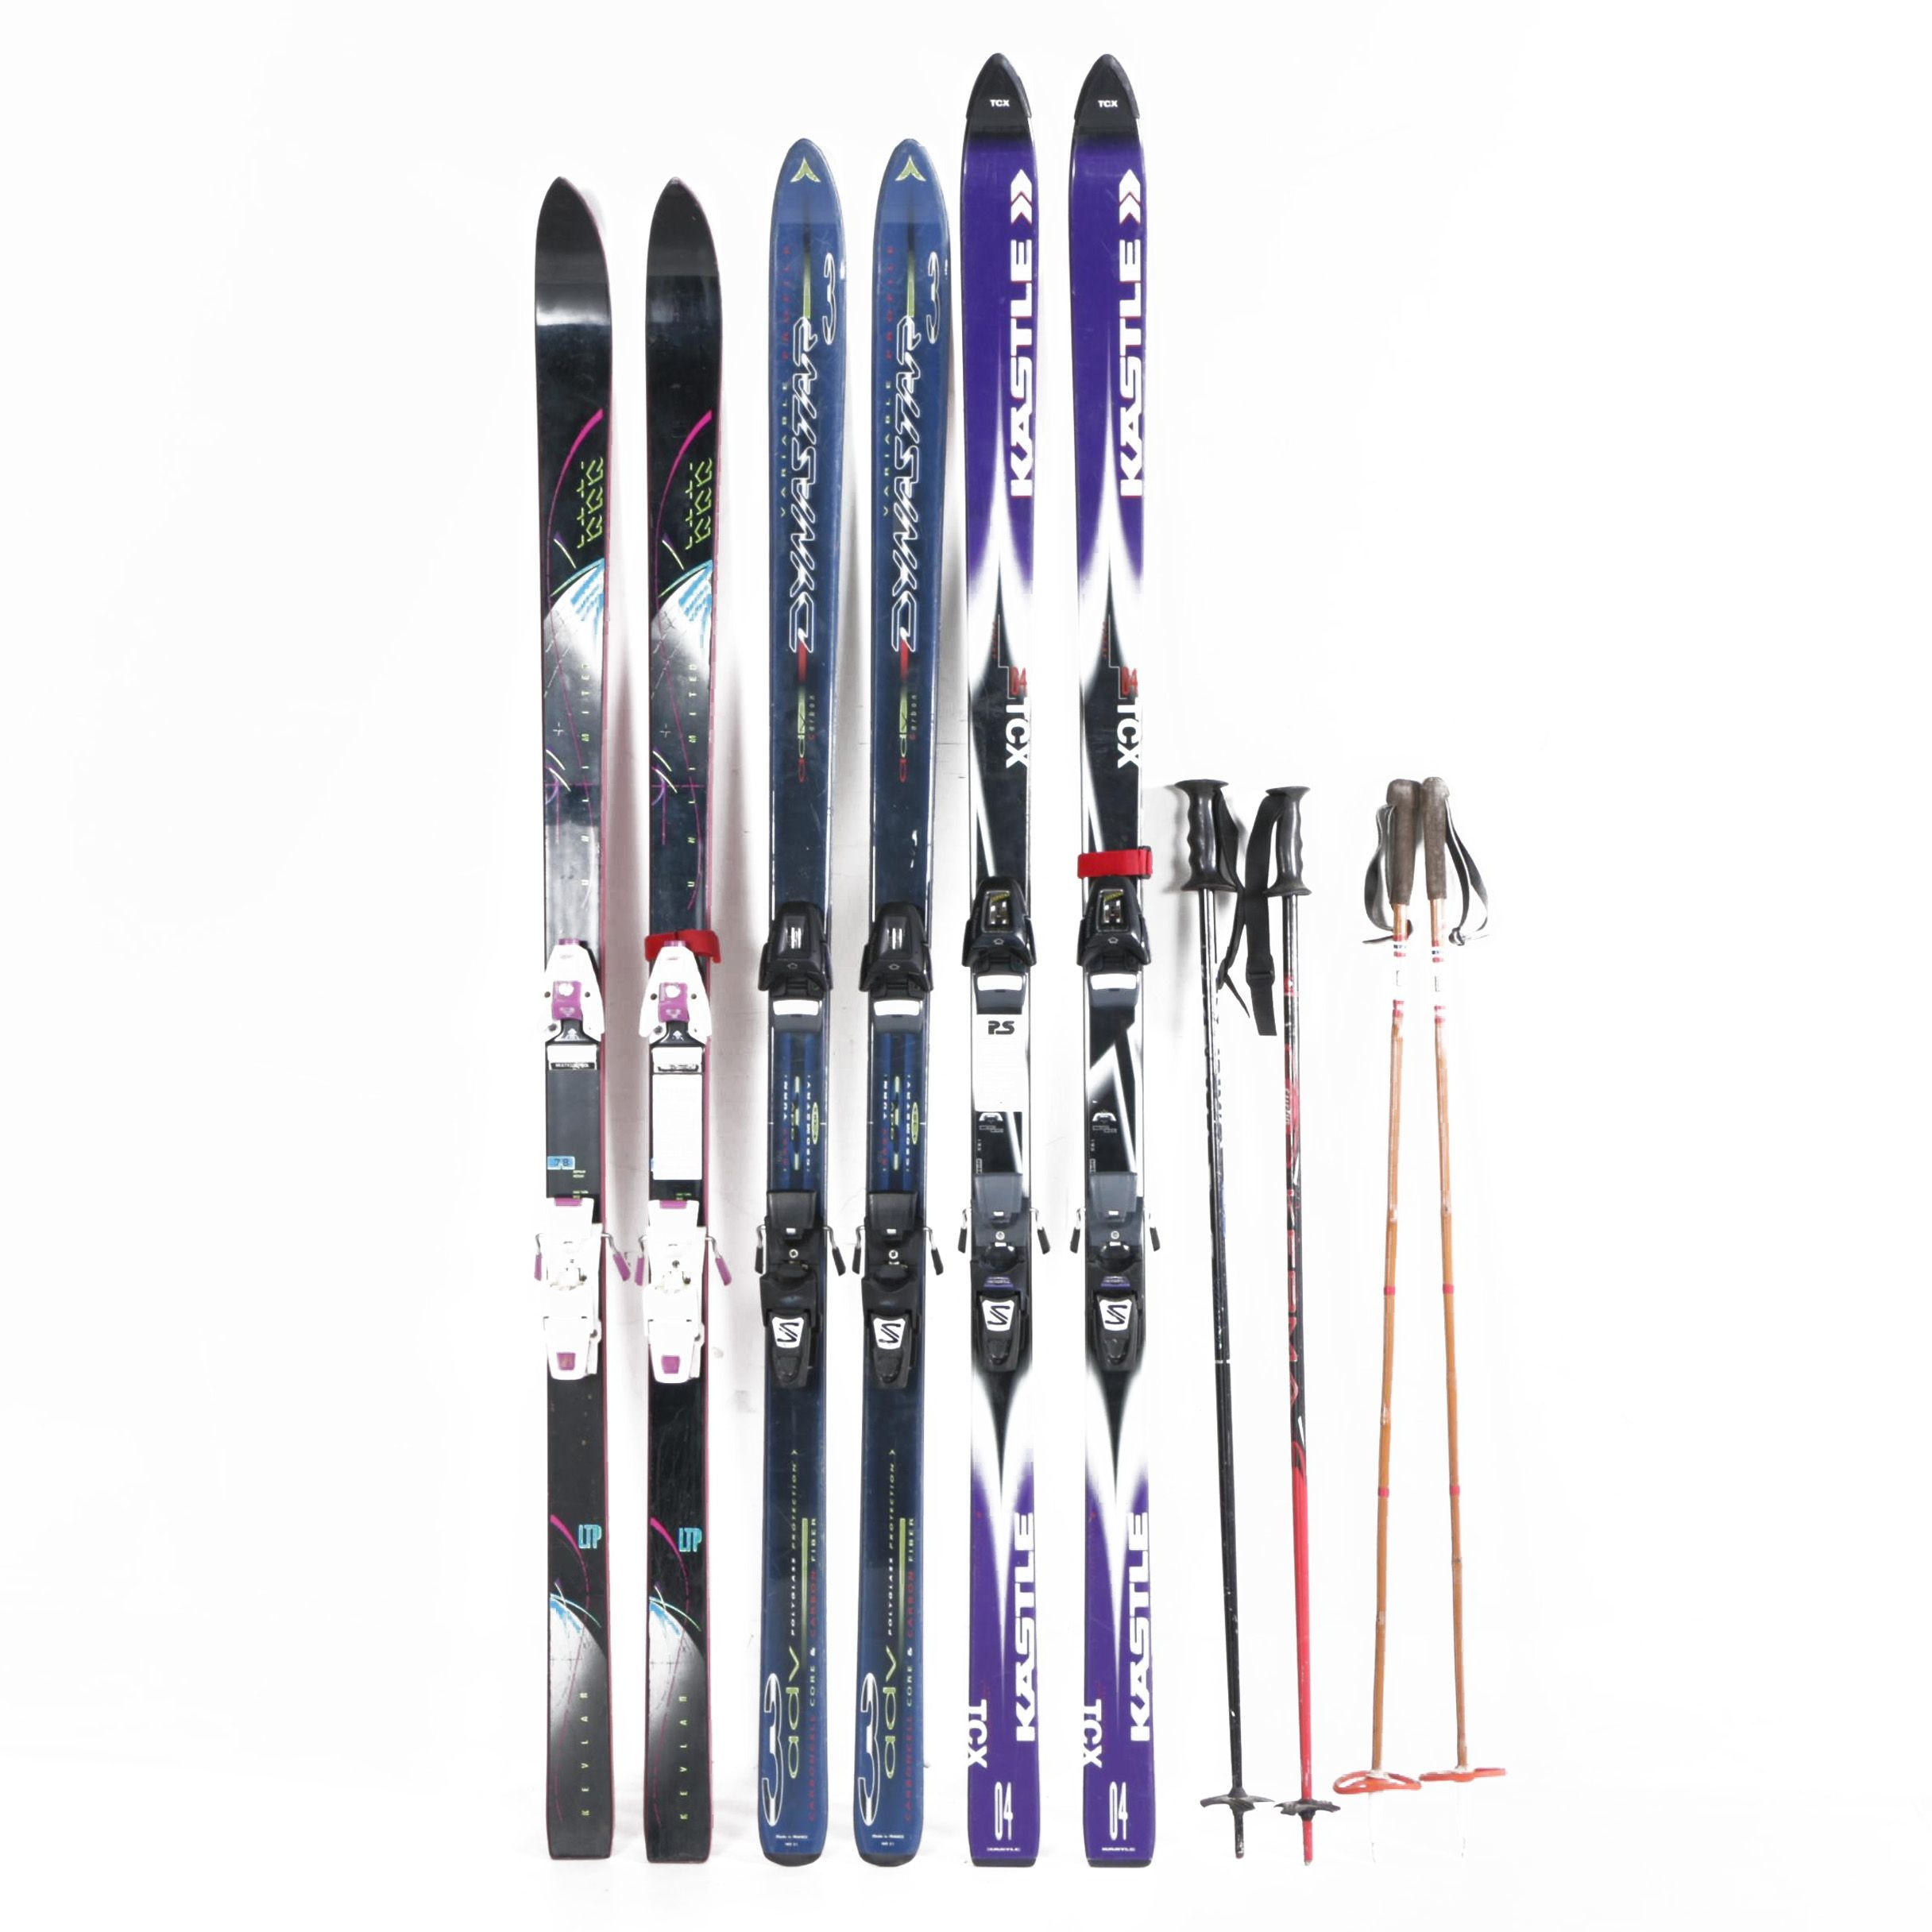 K2, Dynastar, and Kastle Downhill Skis